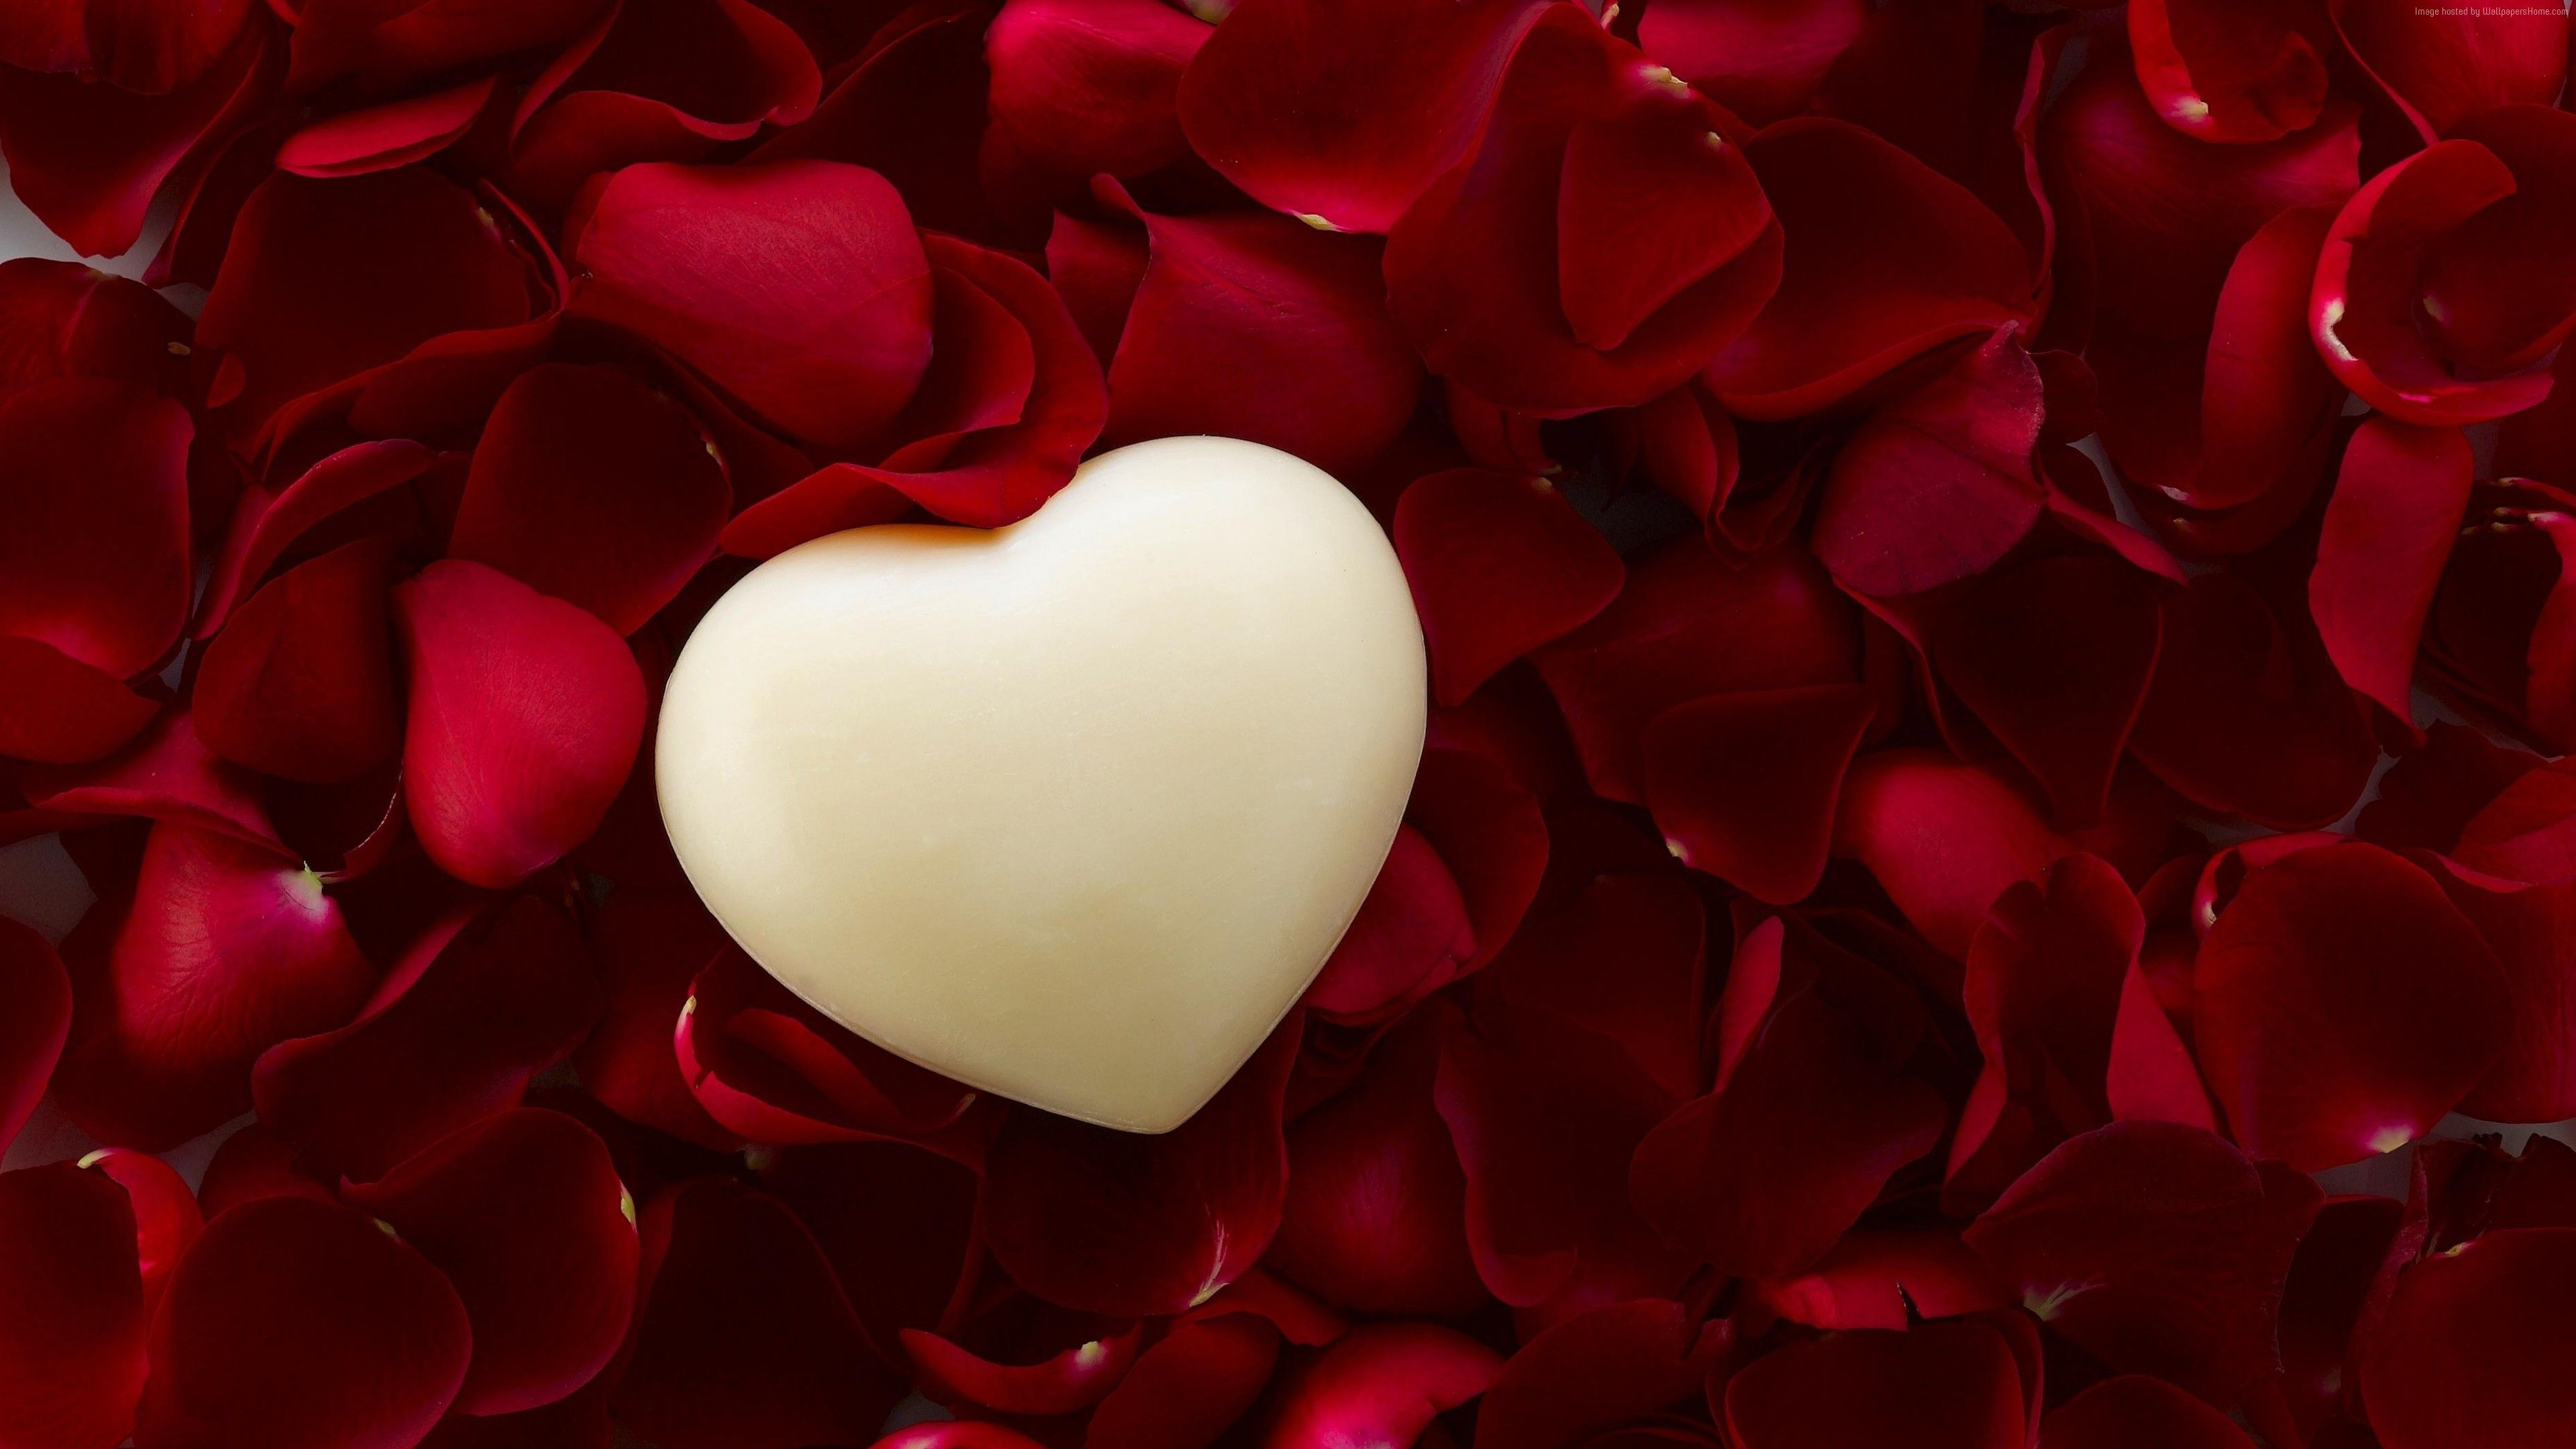 Stock Images Love Image Heart 4k Stock Images